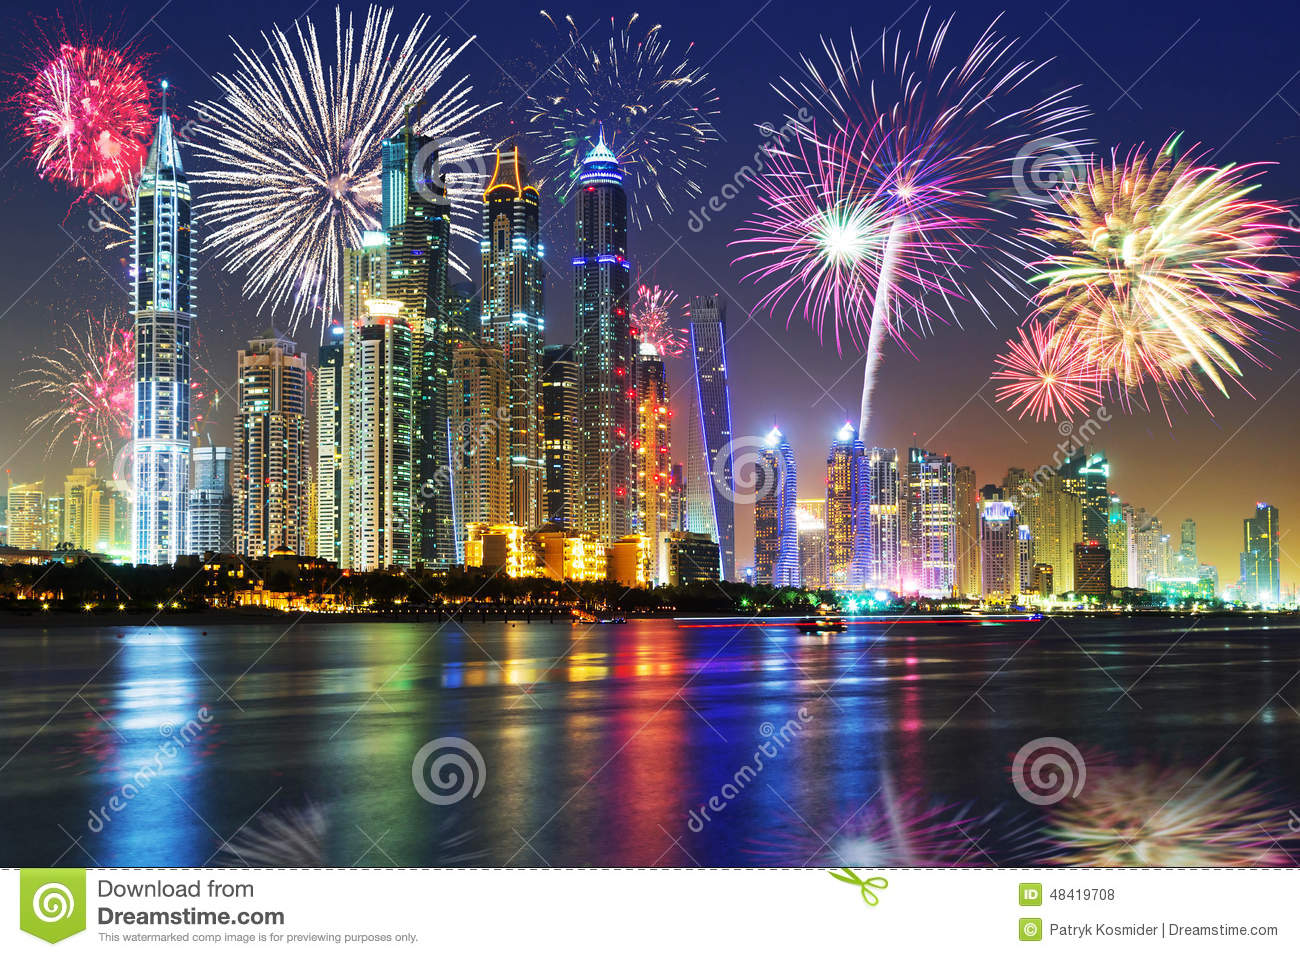 New Years fireworks display in Dubai